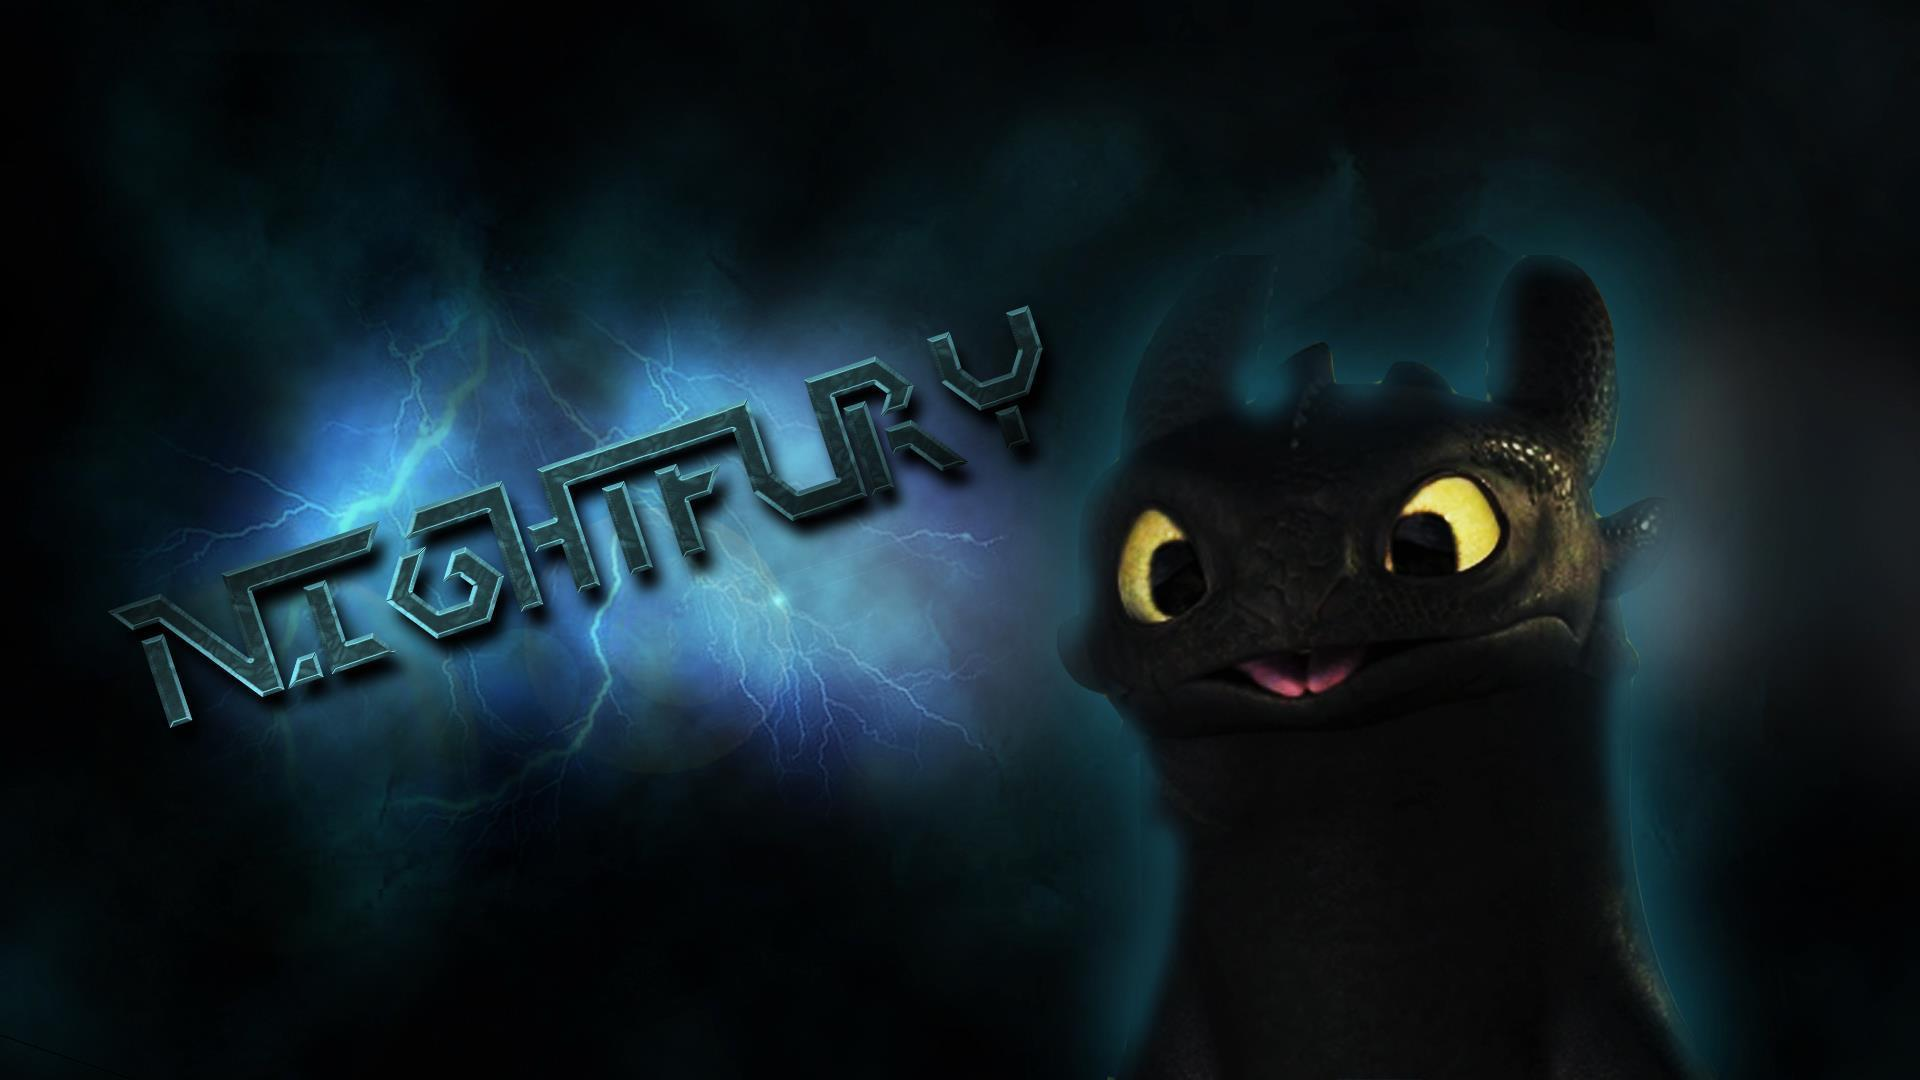 Night Fury Wallpaper - Viewing Gallery